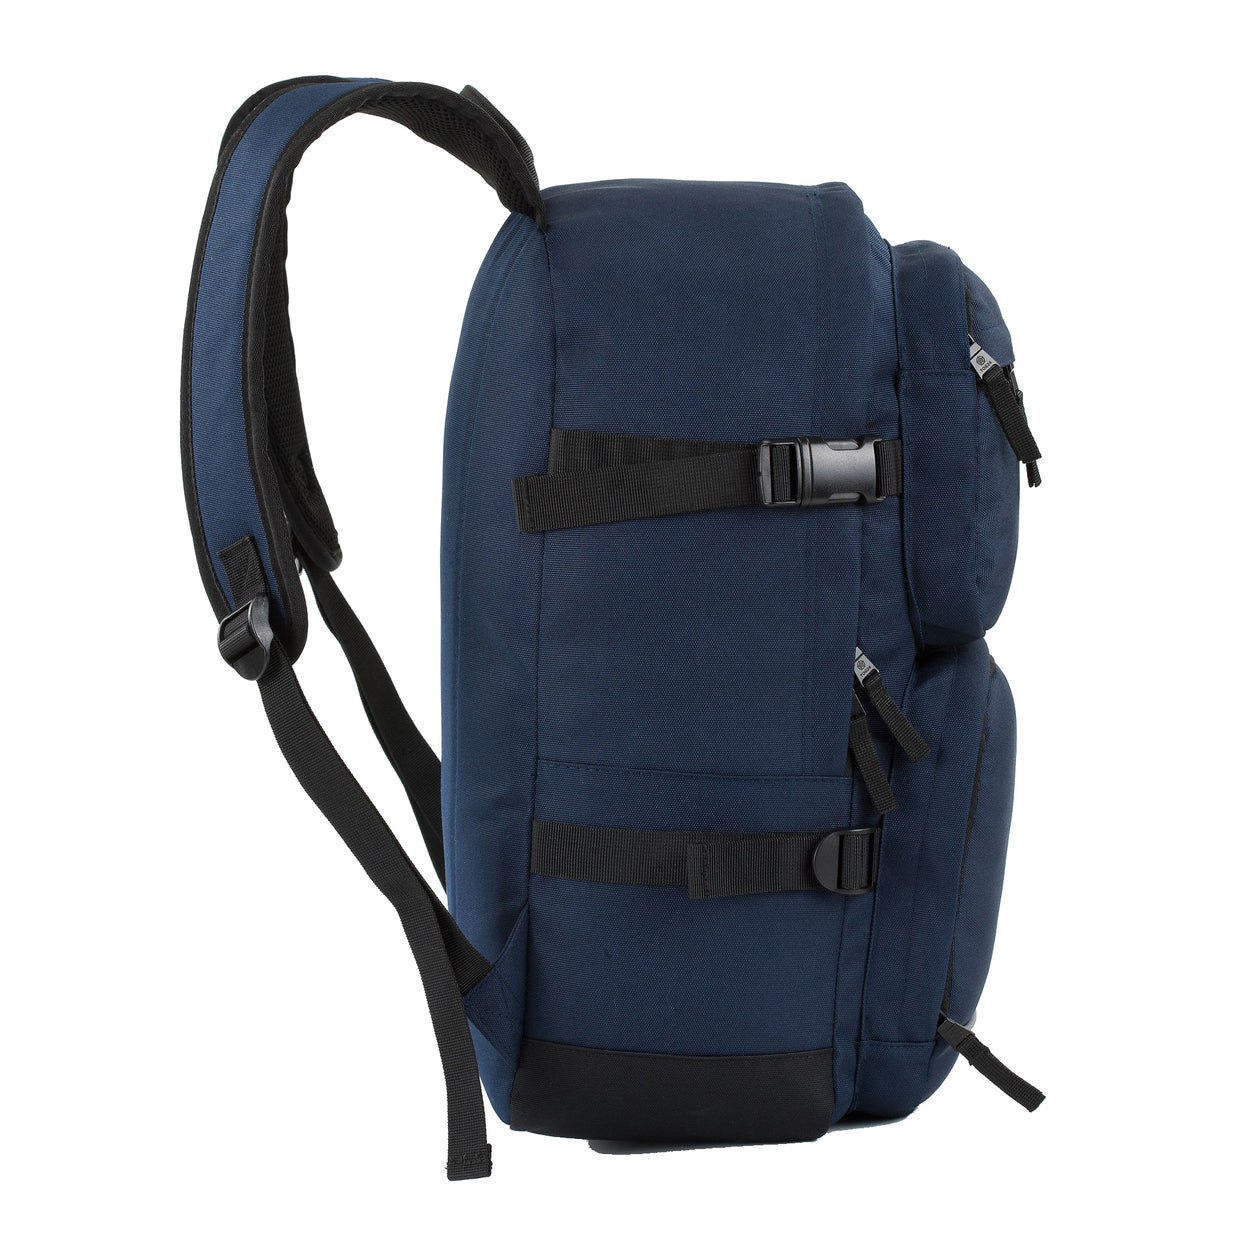 Gardham Backpack - Navy image 4